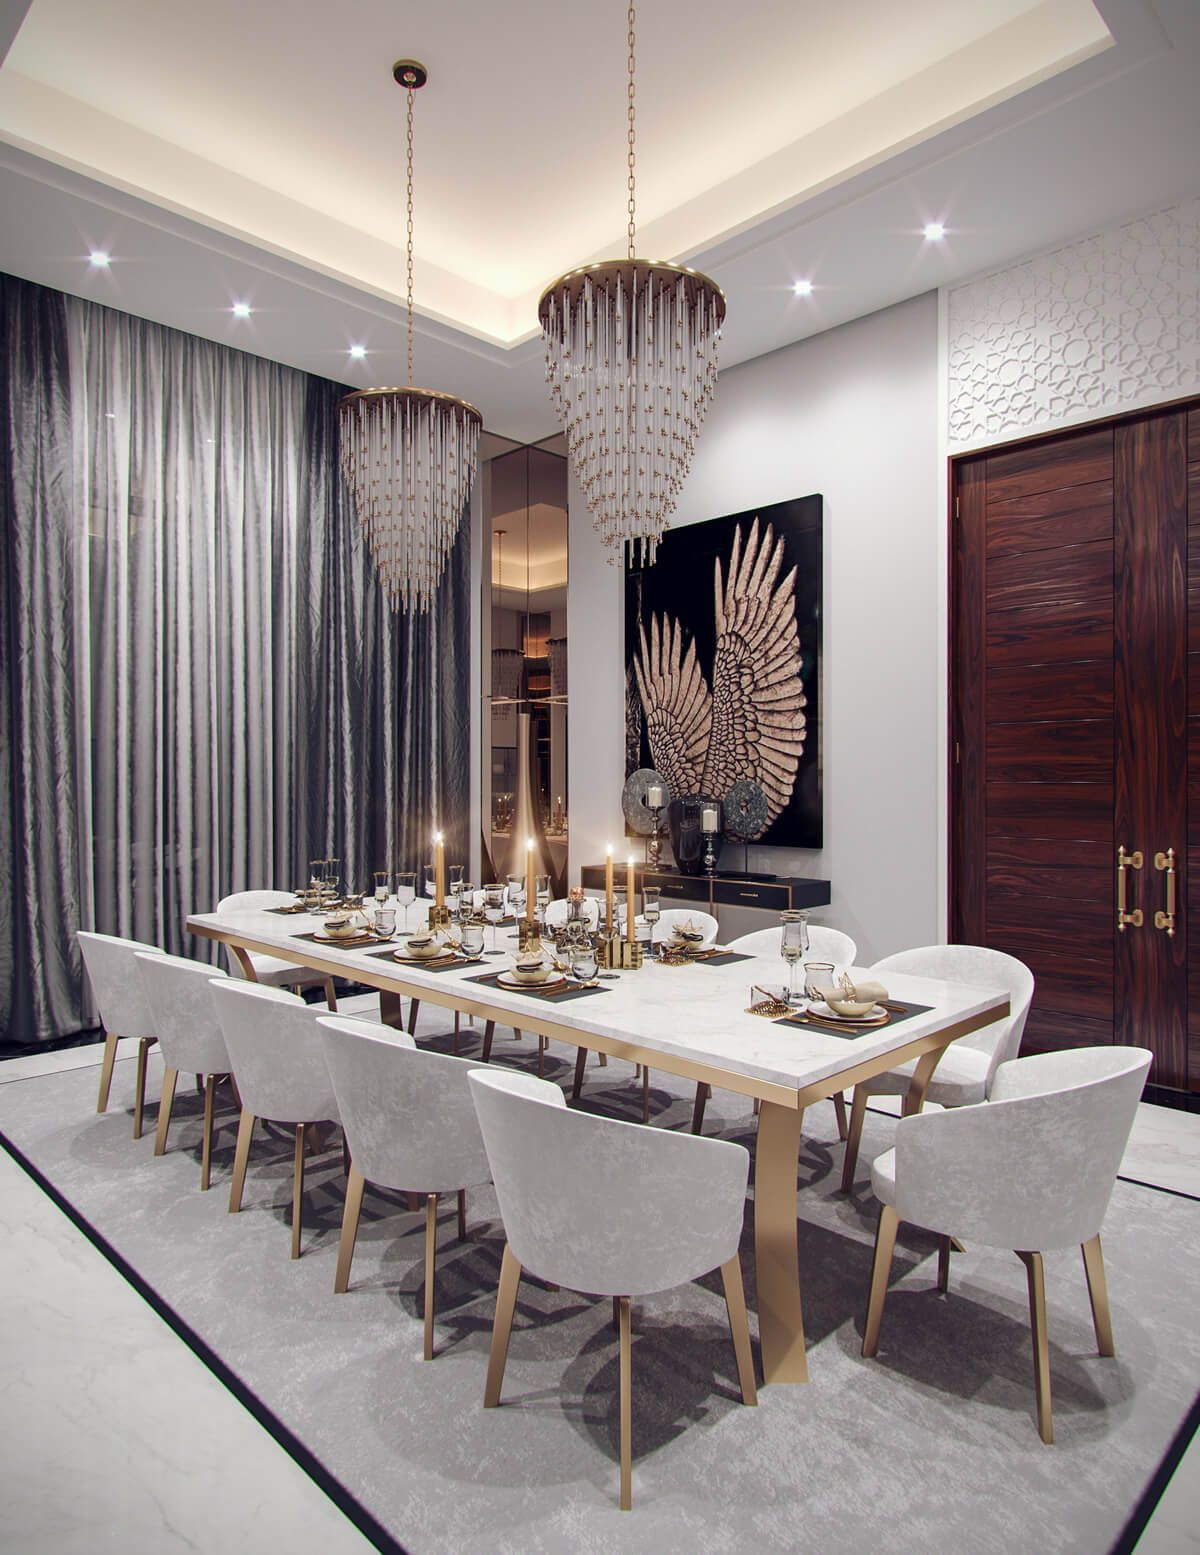 Home Decor Trends To Expect The Upcoming Season Interior Design Dining Room Luxury Dining Room Dining Room Contemporary